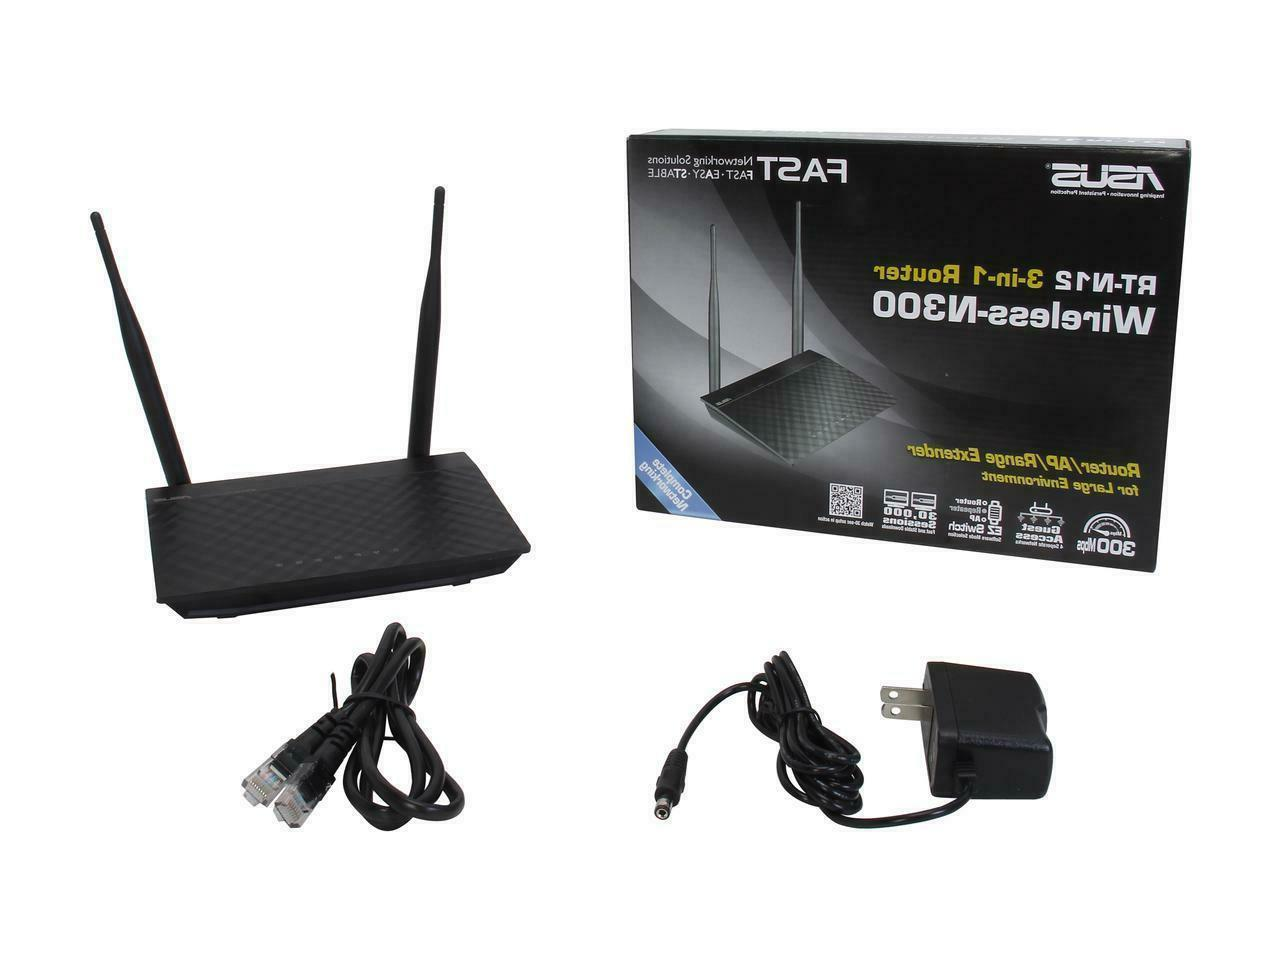 brand new rt n12 d1 wireless router